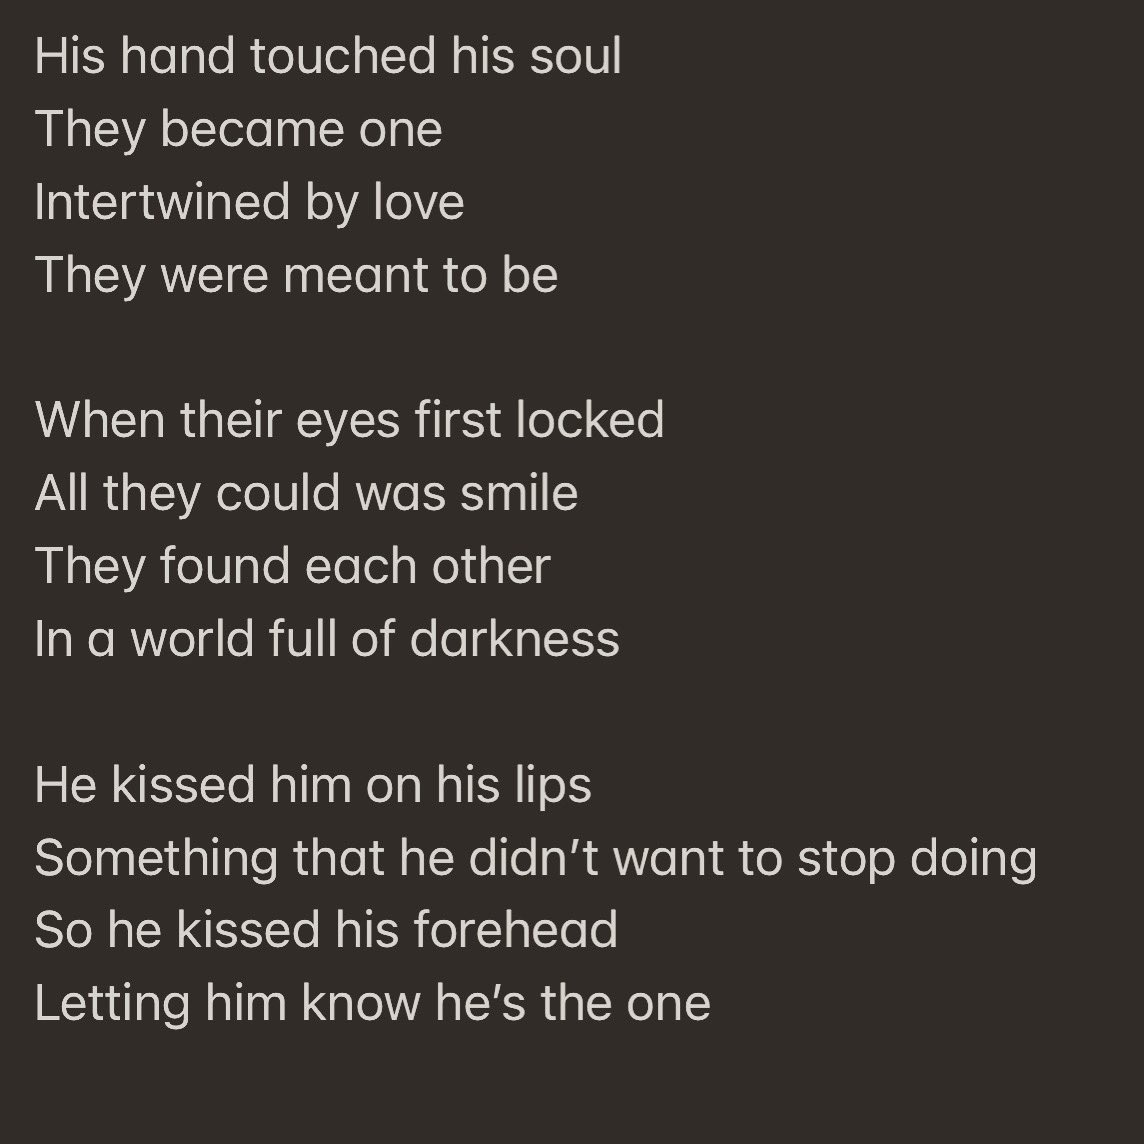 A poem I wrote #LGBT https://t.co/9YZrT5sd4M